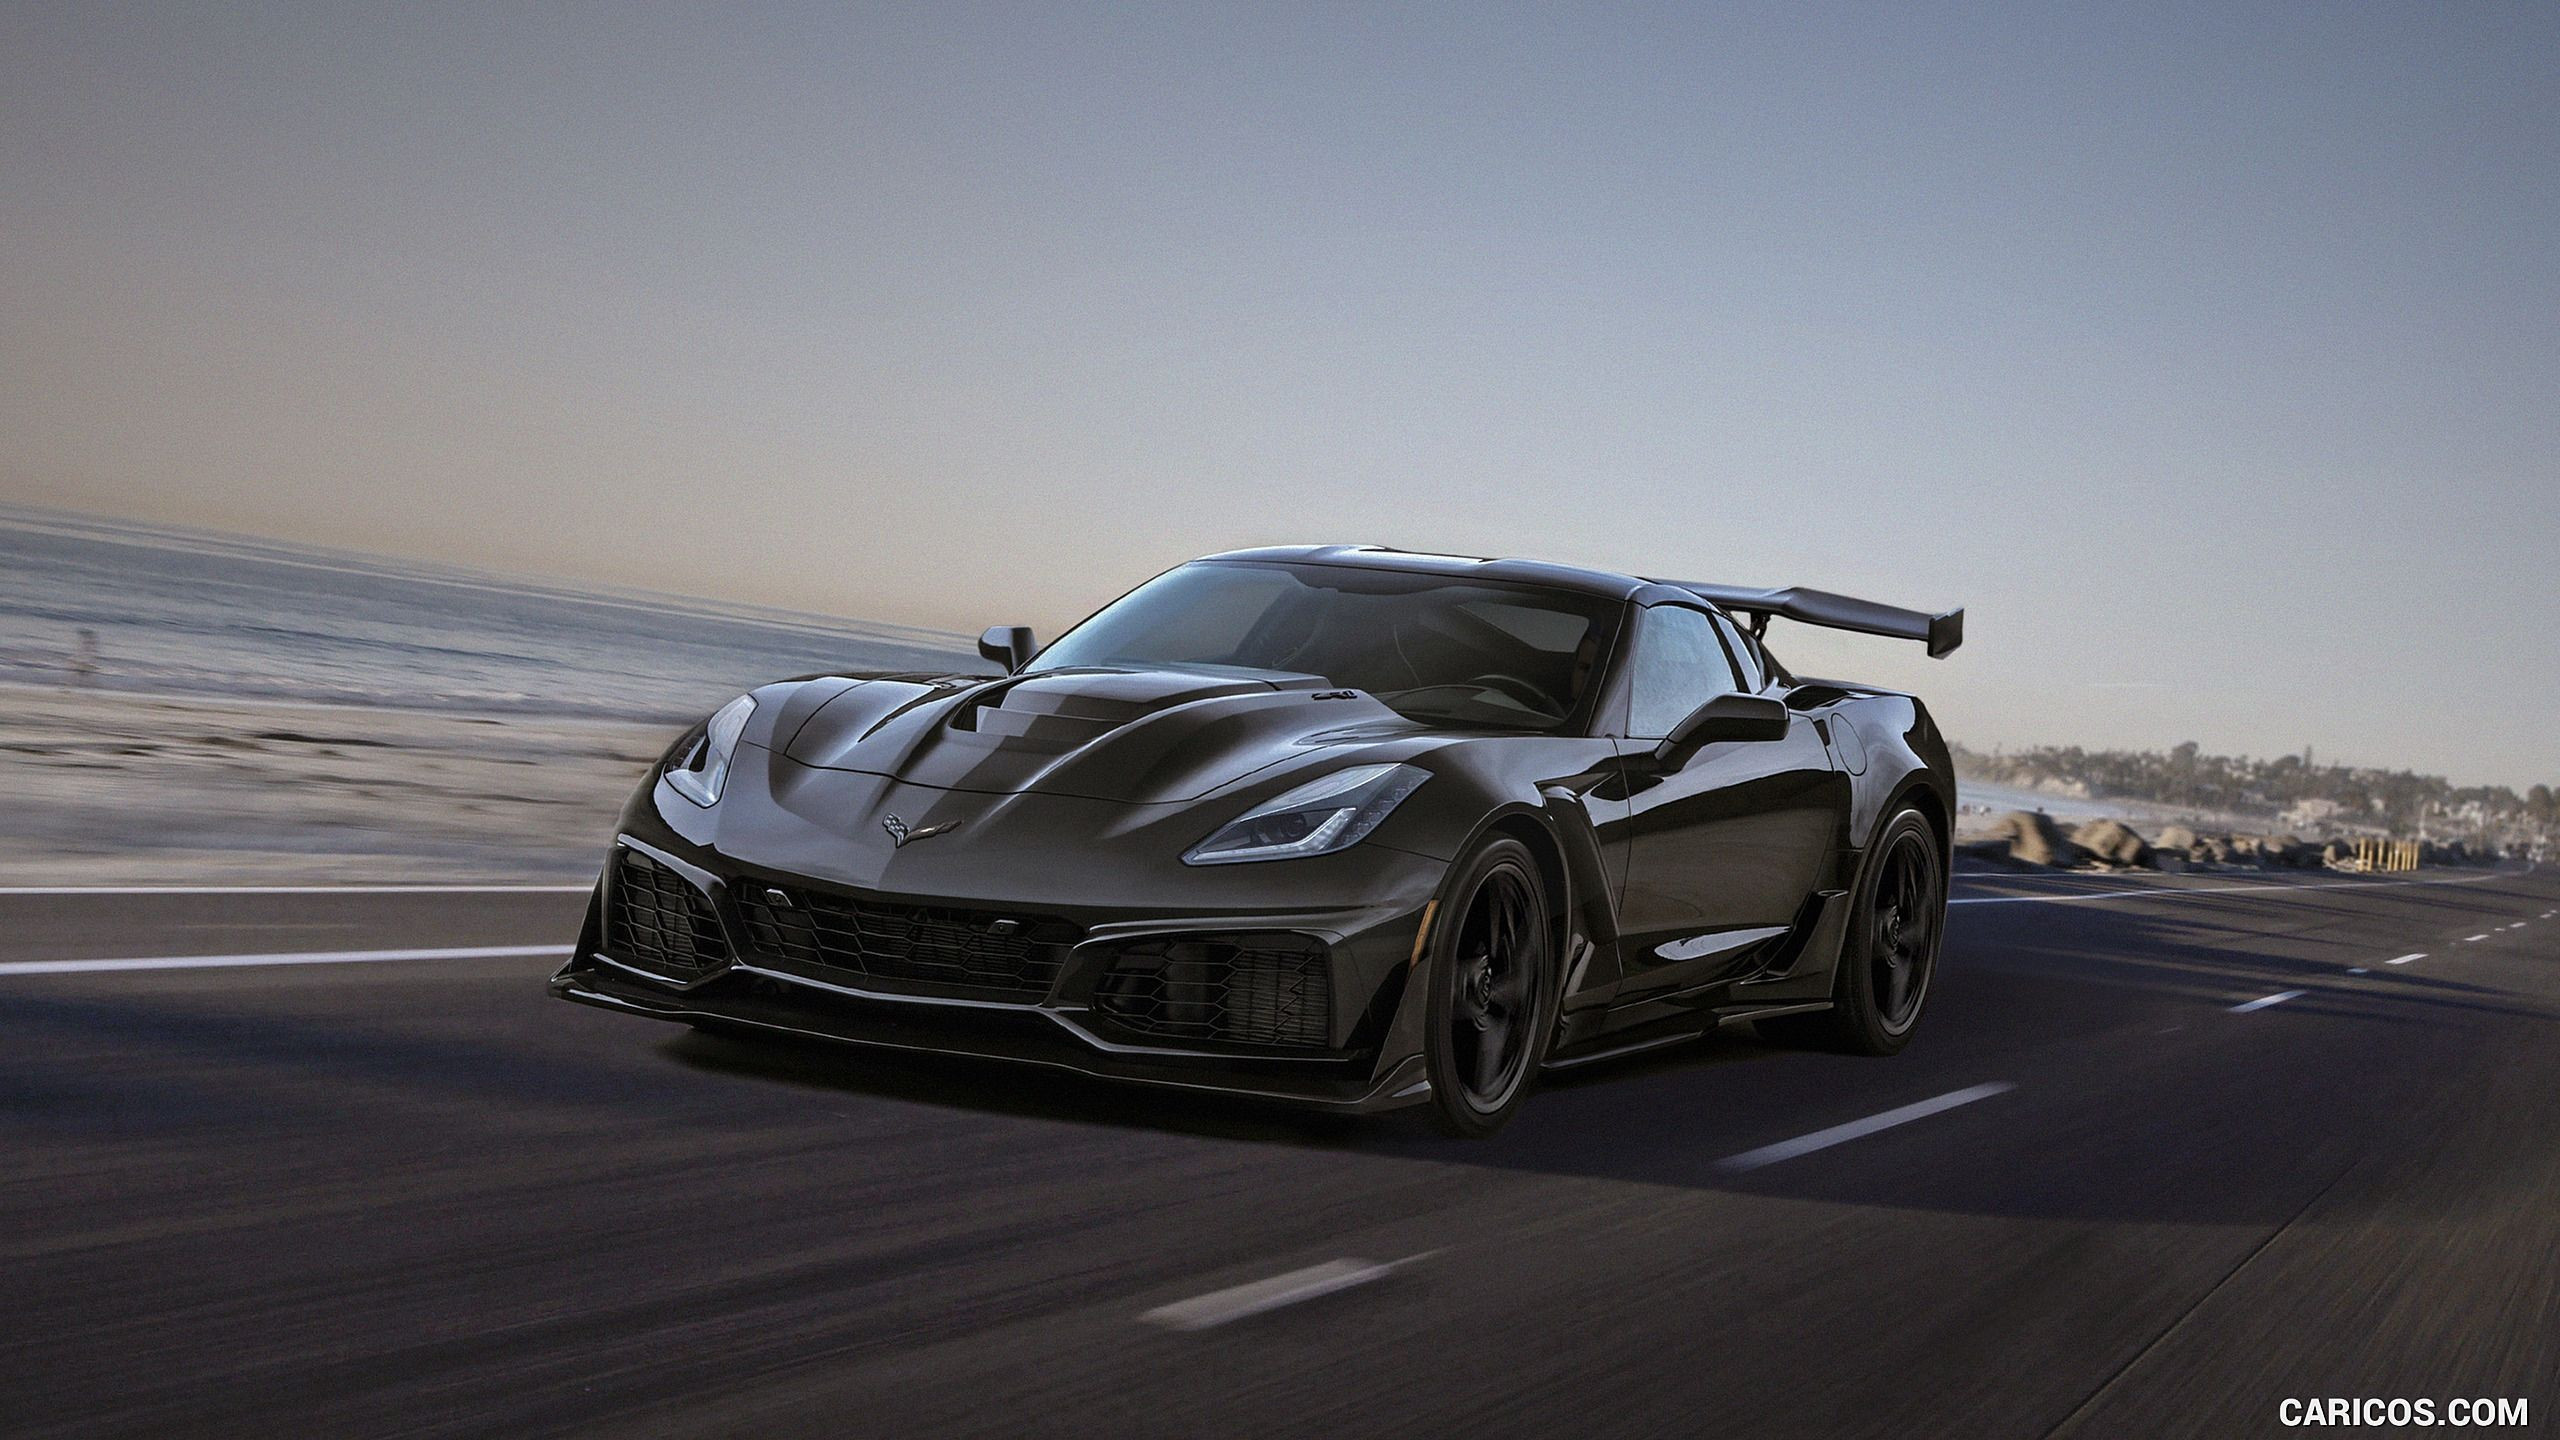 55 The 2019 Chevrolet Corvette Zora Zr1 Spy Shoot